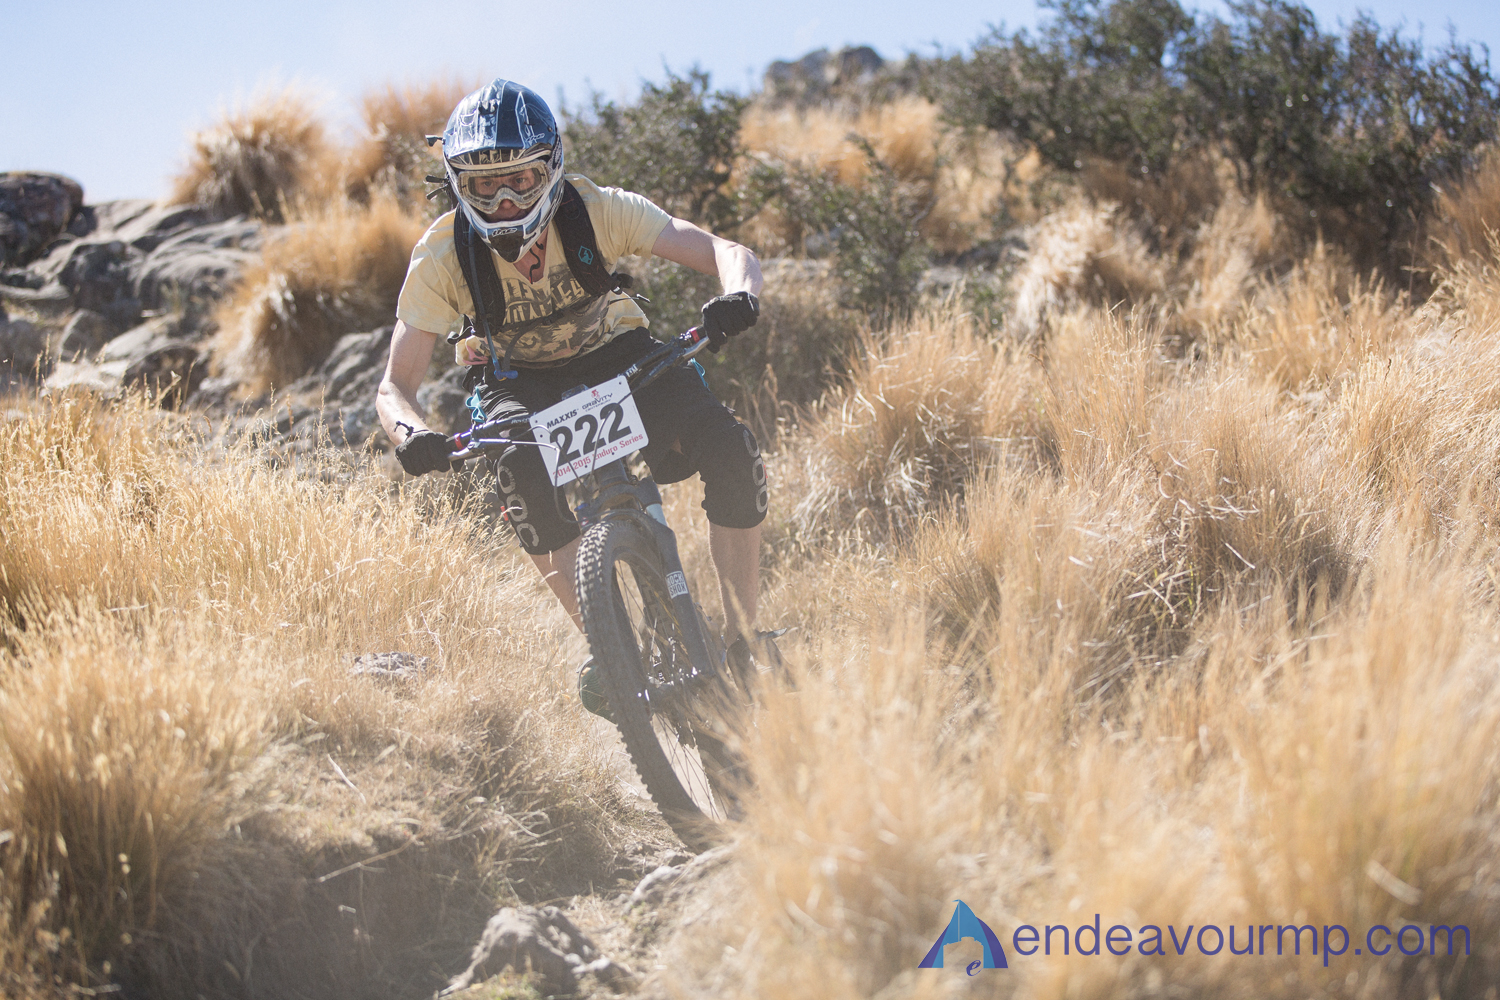 EMP_Enduro_Port_Hills_003.jpg